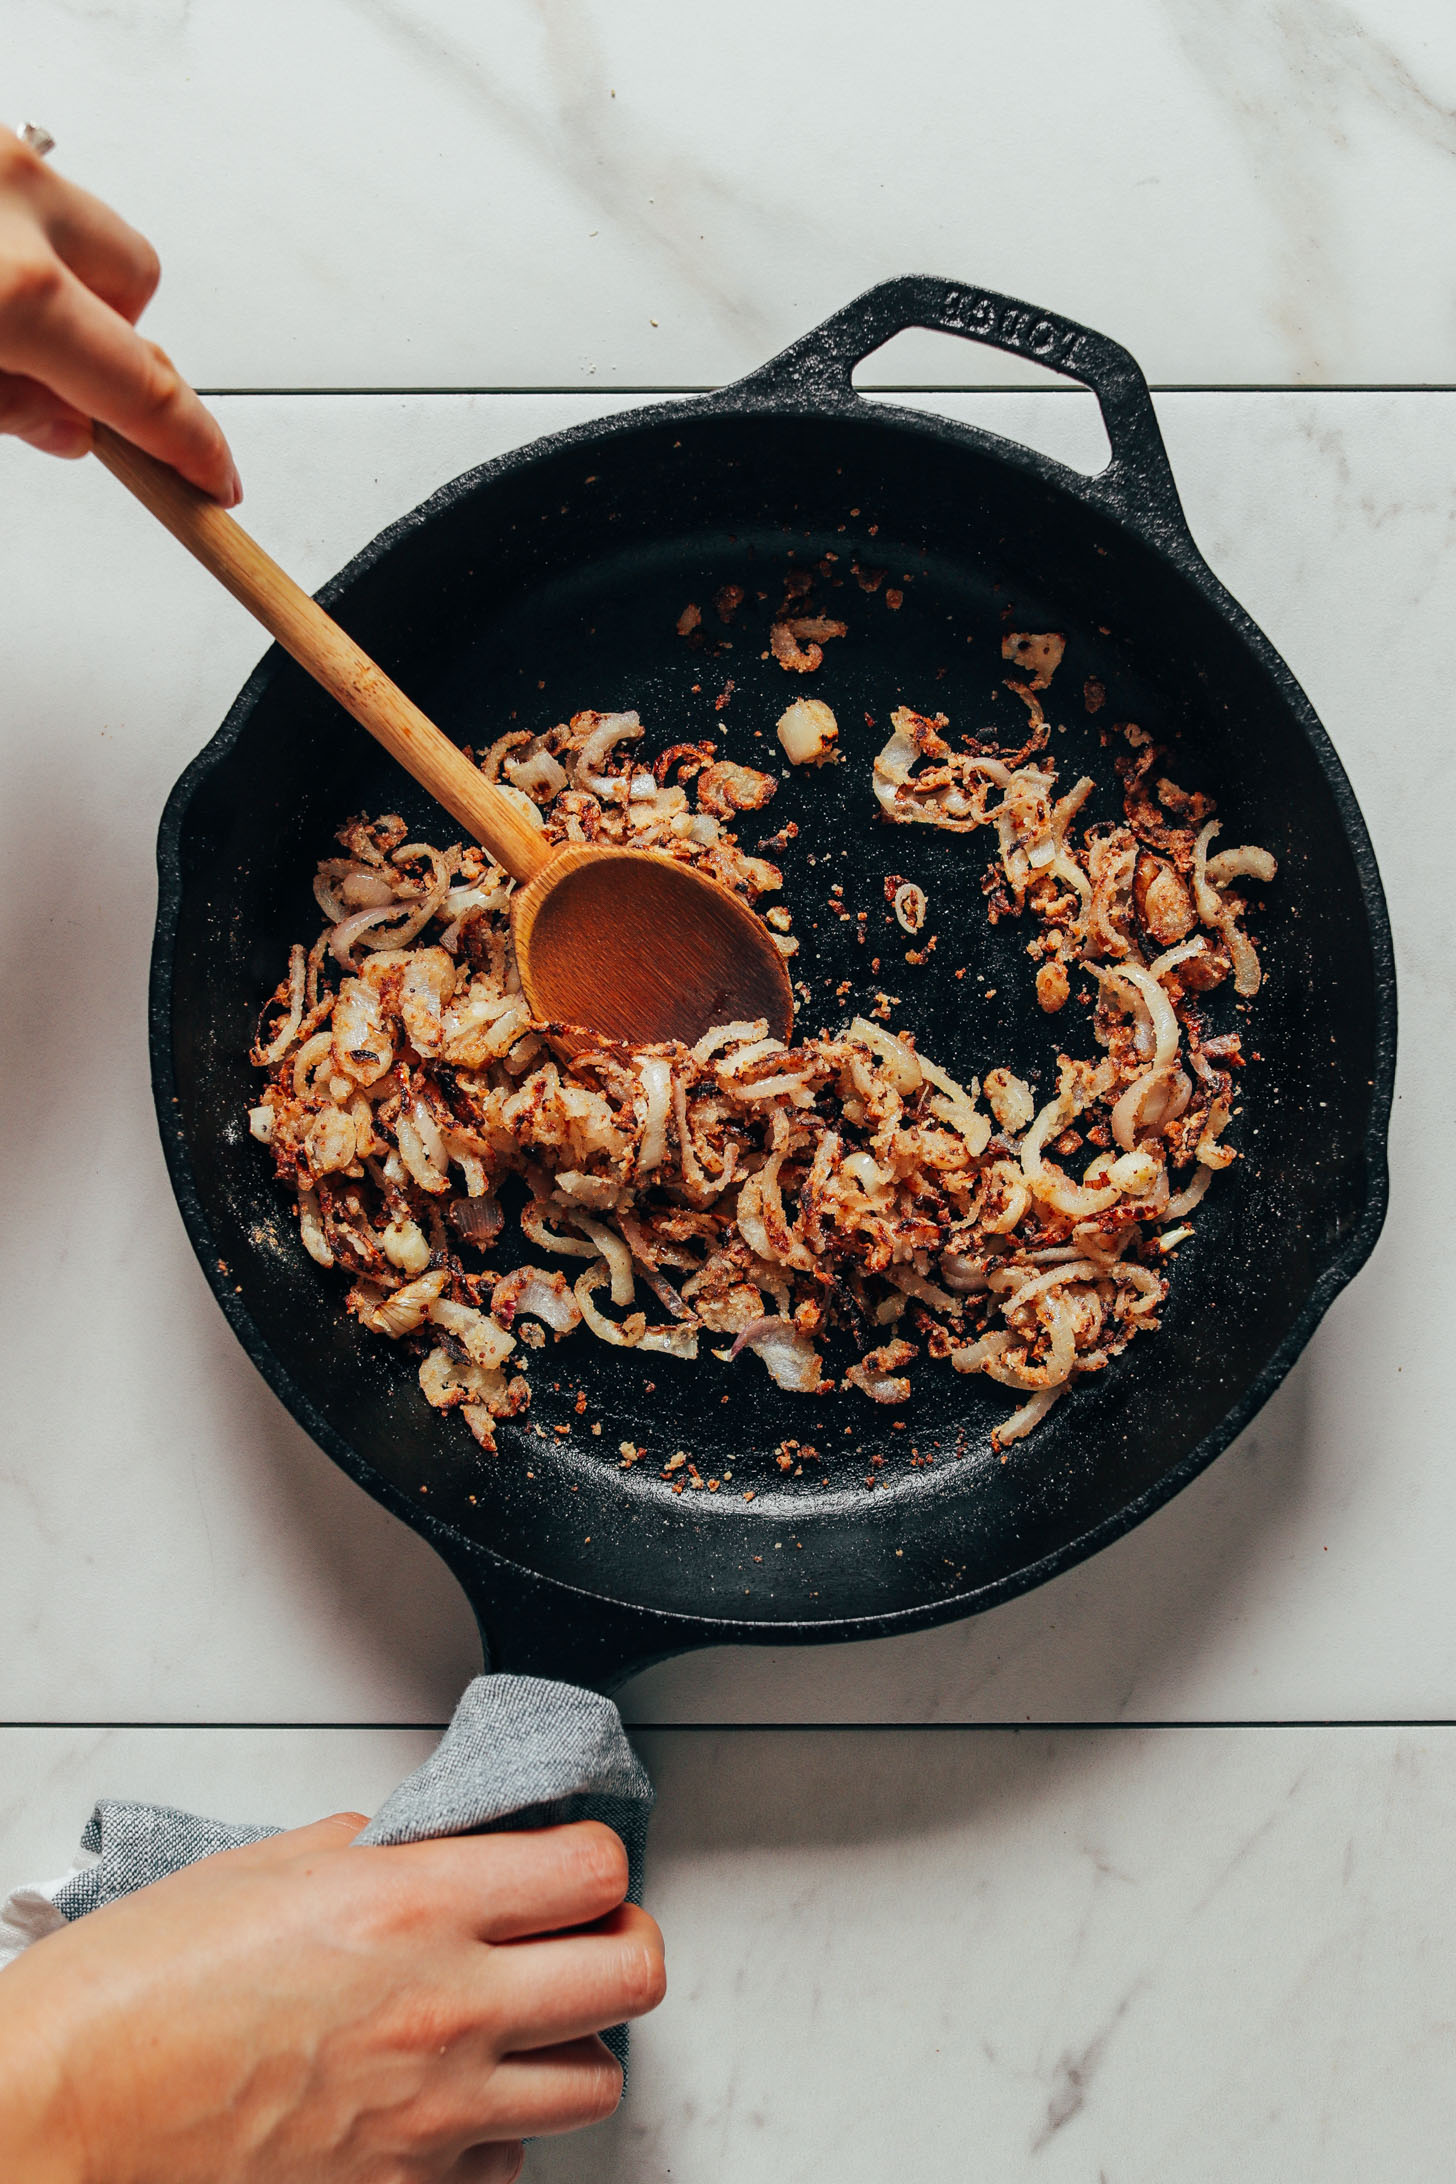 Cooking crispy shallots in a cast iron skillet for our Lemony Arugula Salad recipe